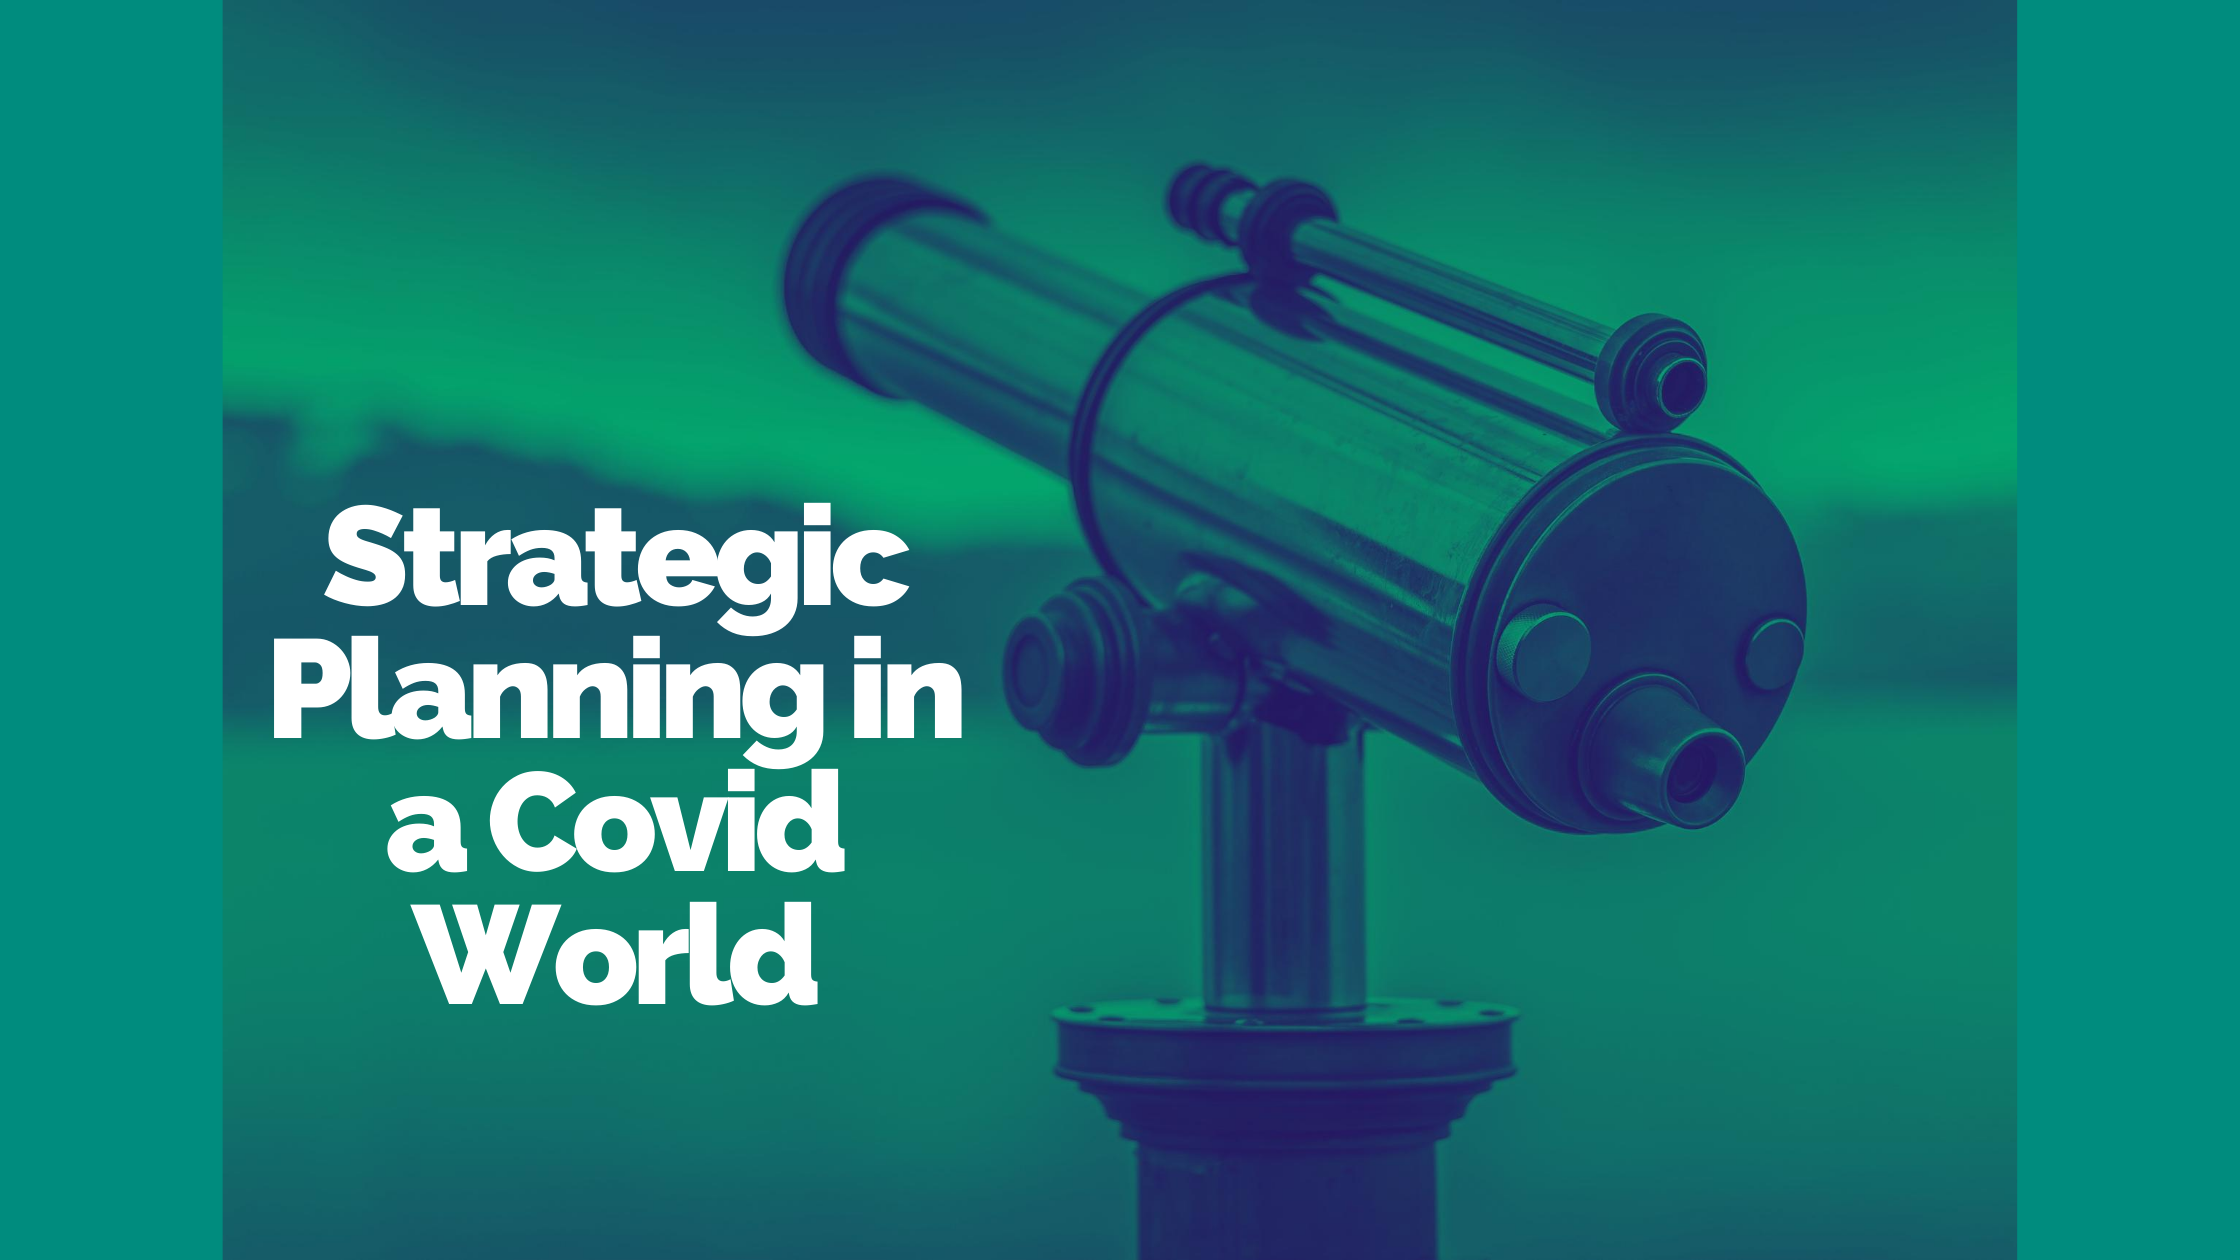 Strategic Planning in a Covid World